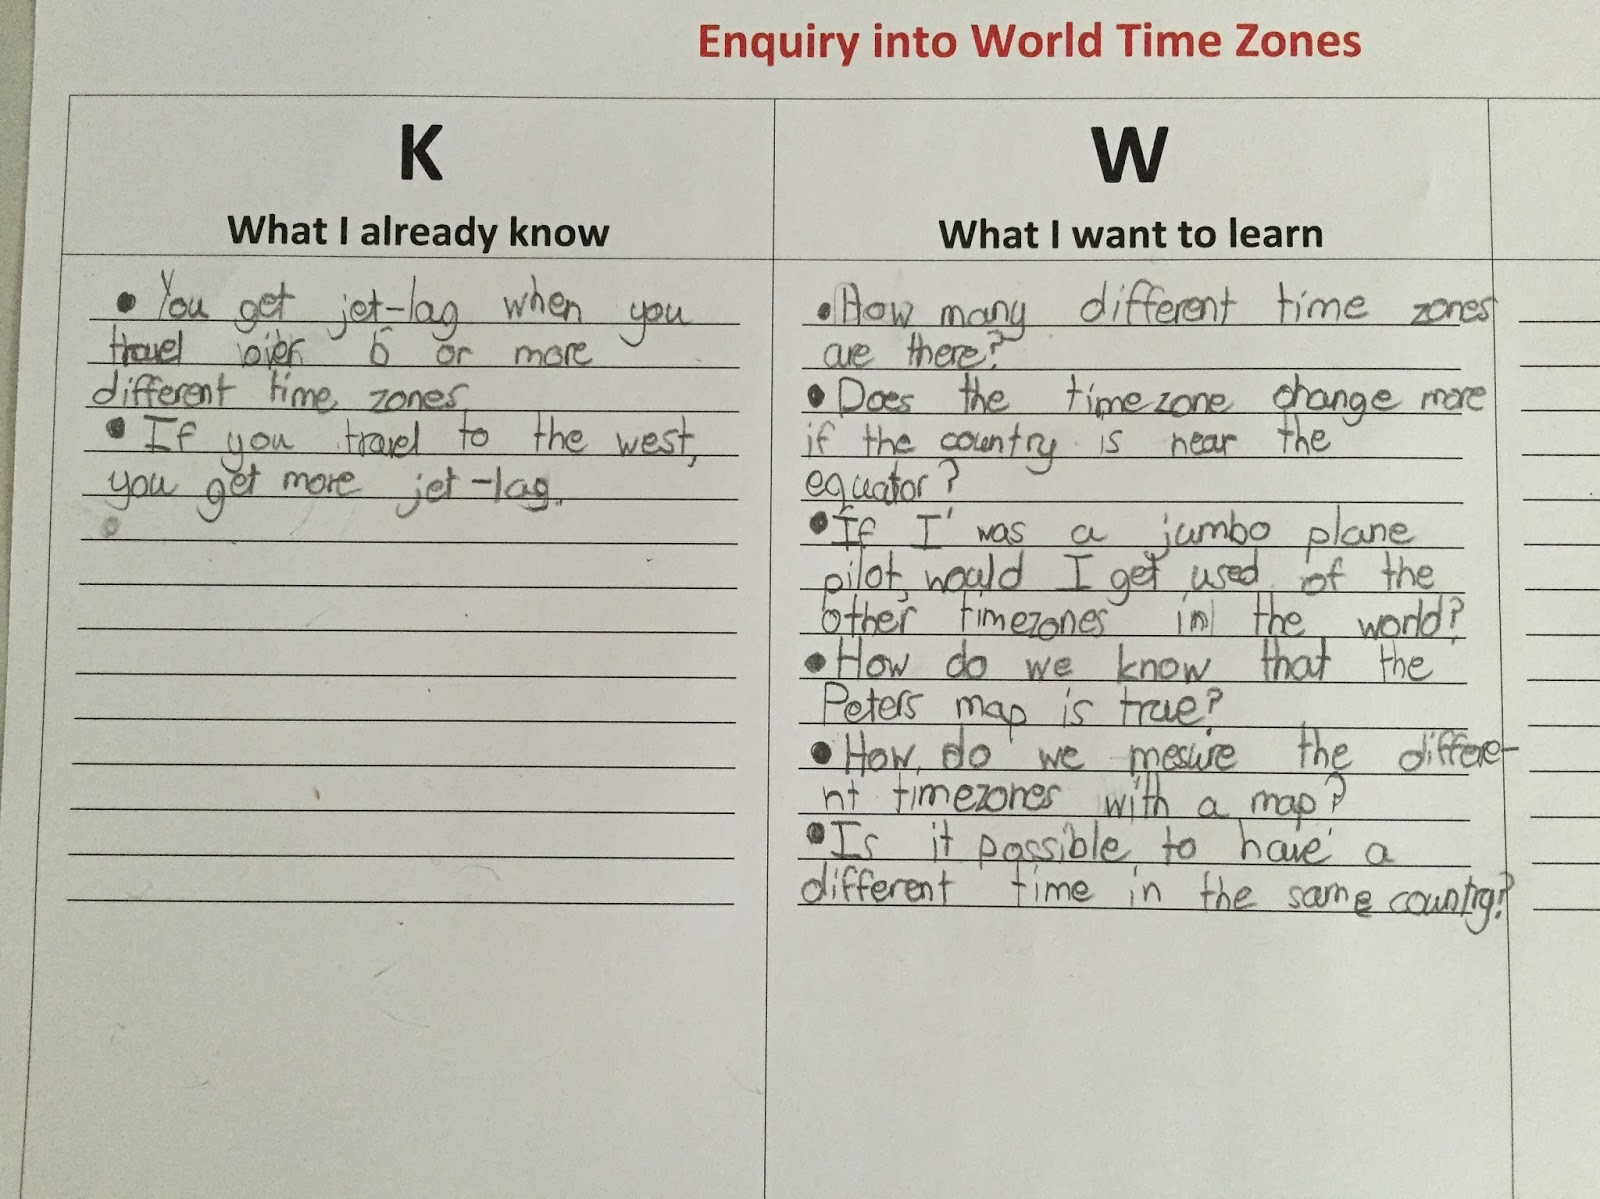 we filled in everything we already know about world time zones and then wrote some questions about things we wanted to learn